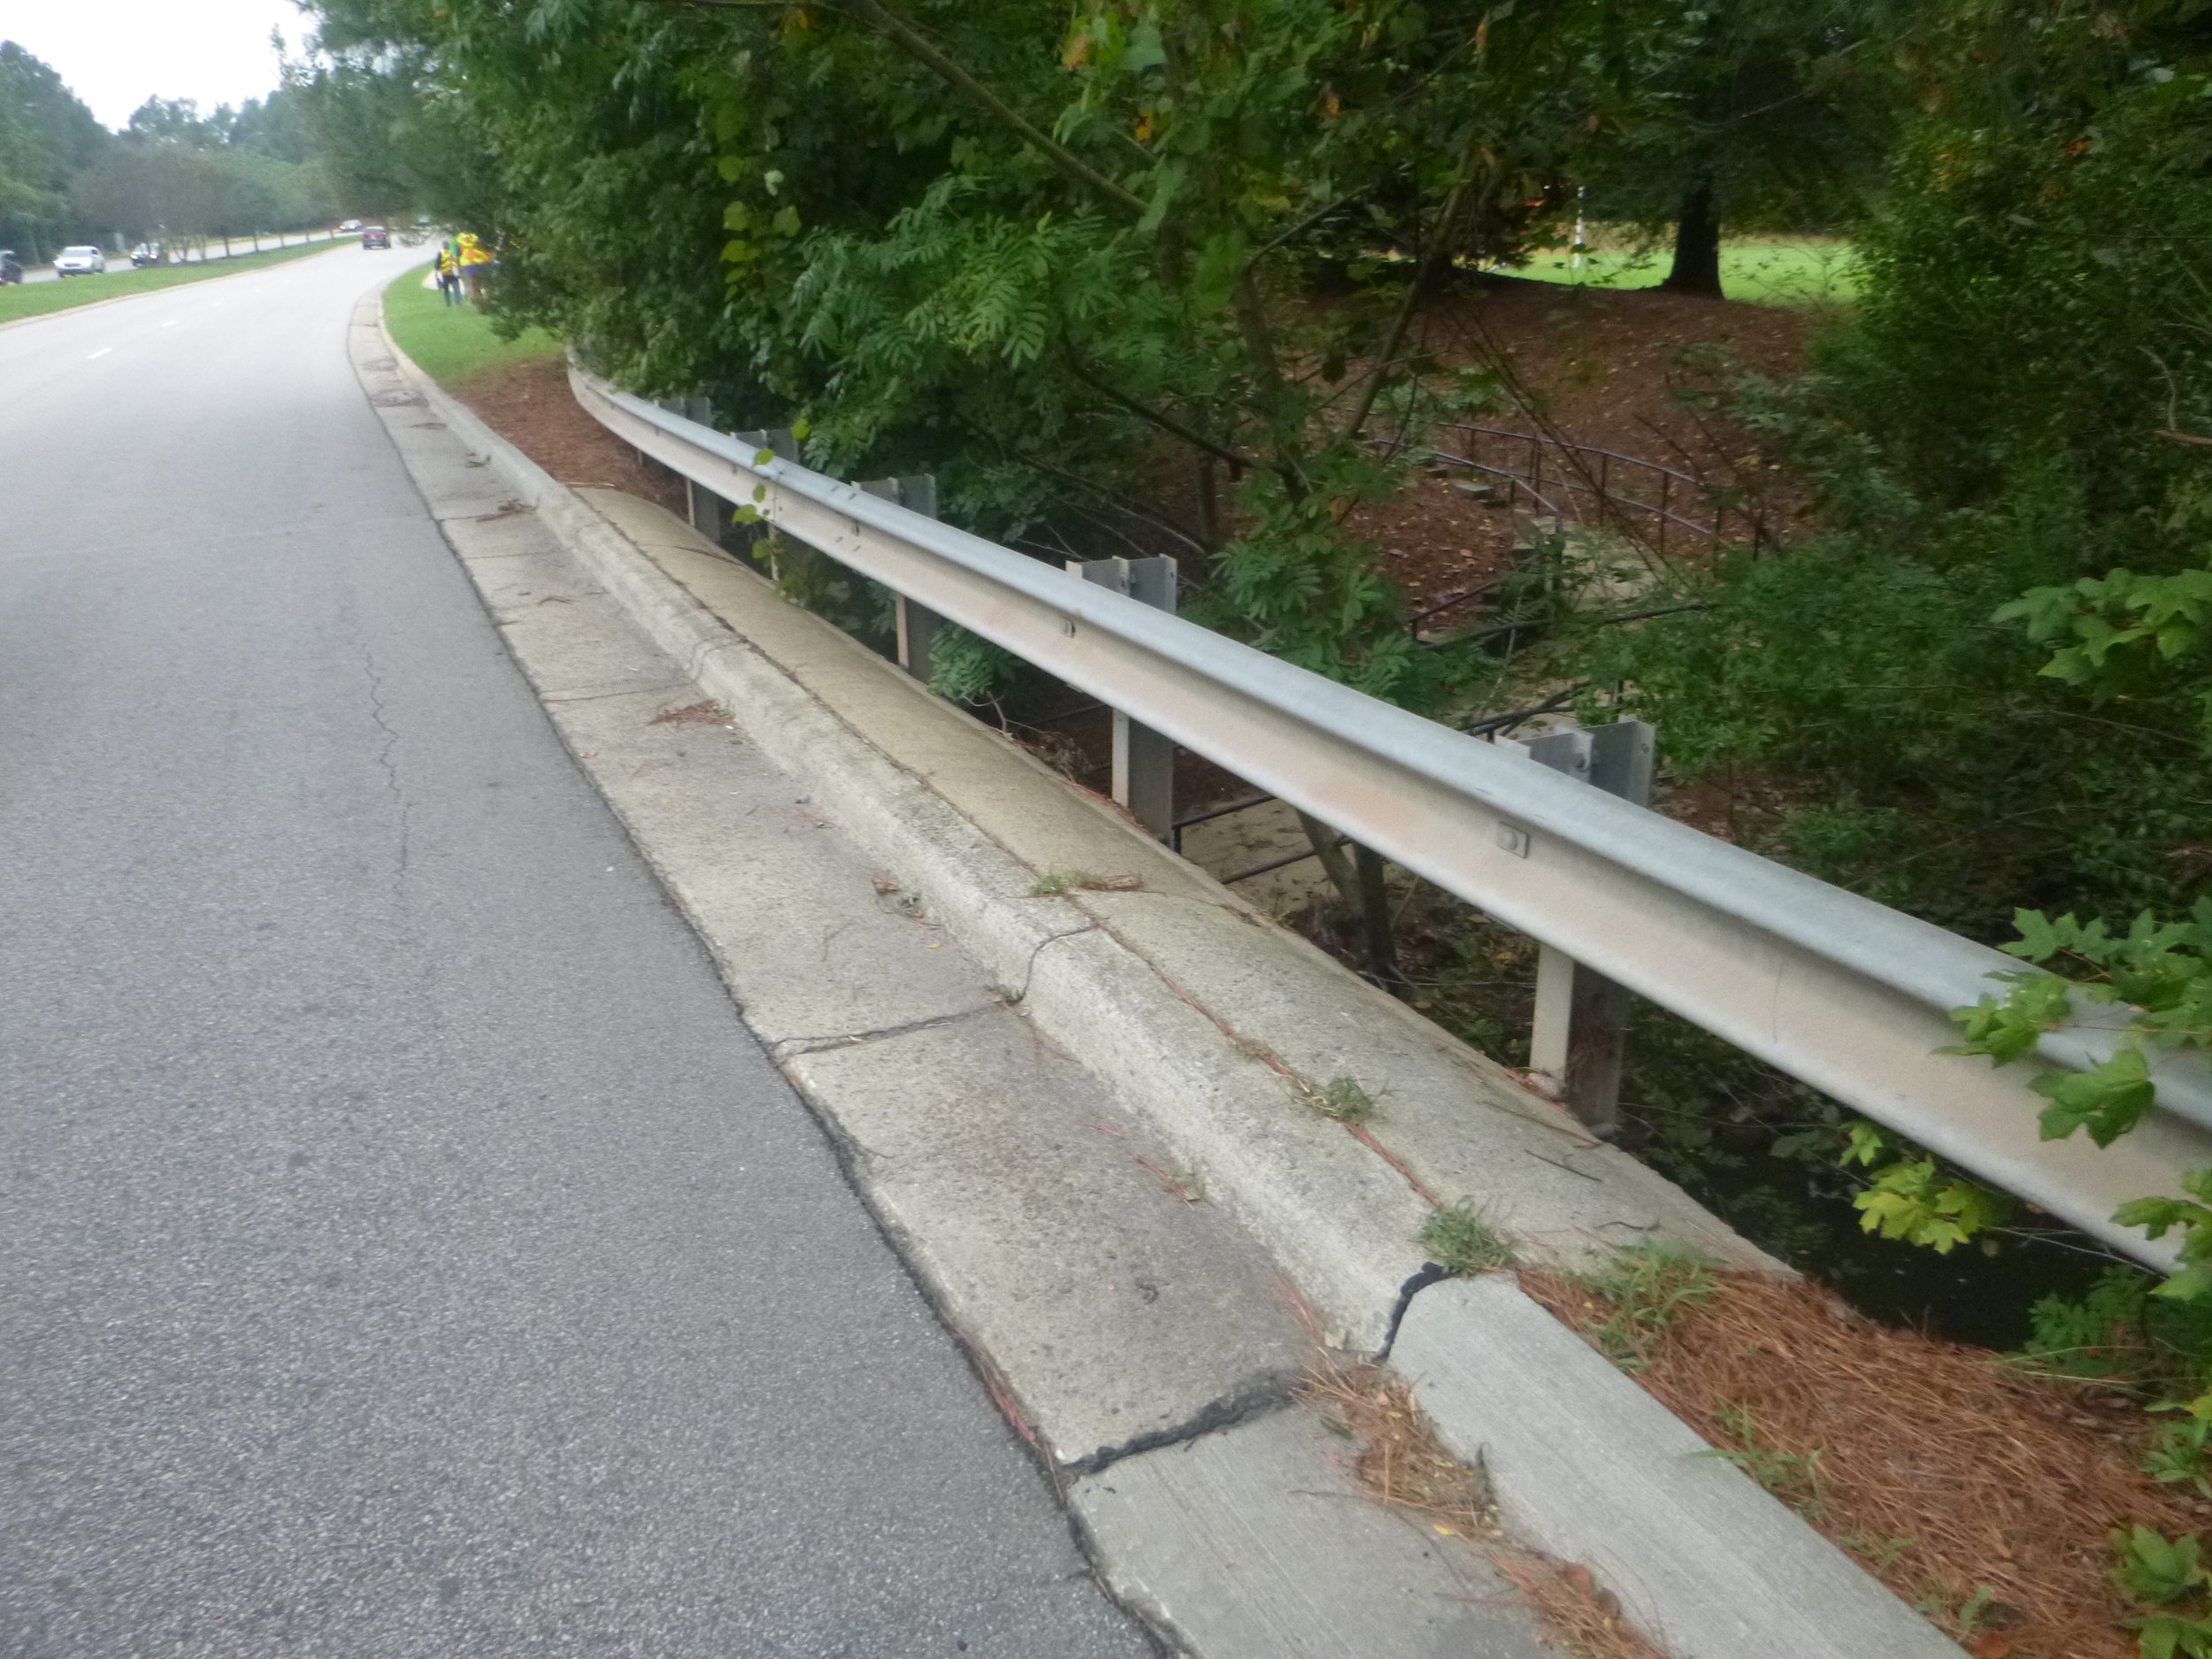 The new bridge will cross Crabtree Creek and connect sidewalks on this side of Cary Parkway.